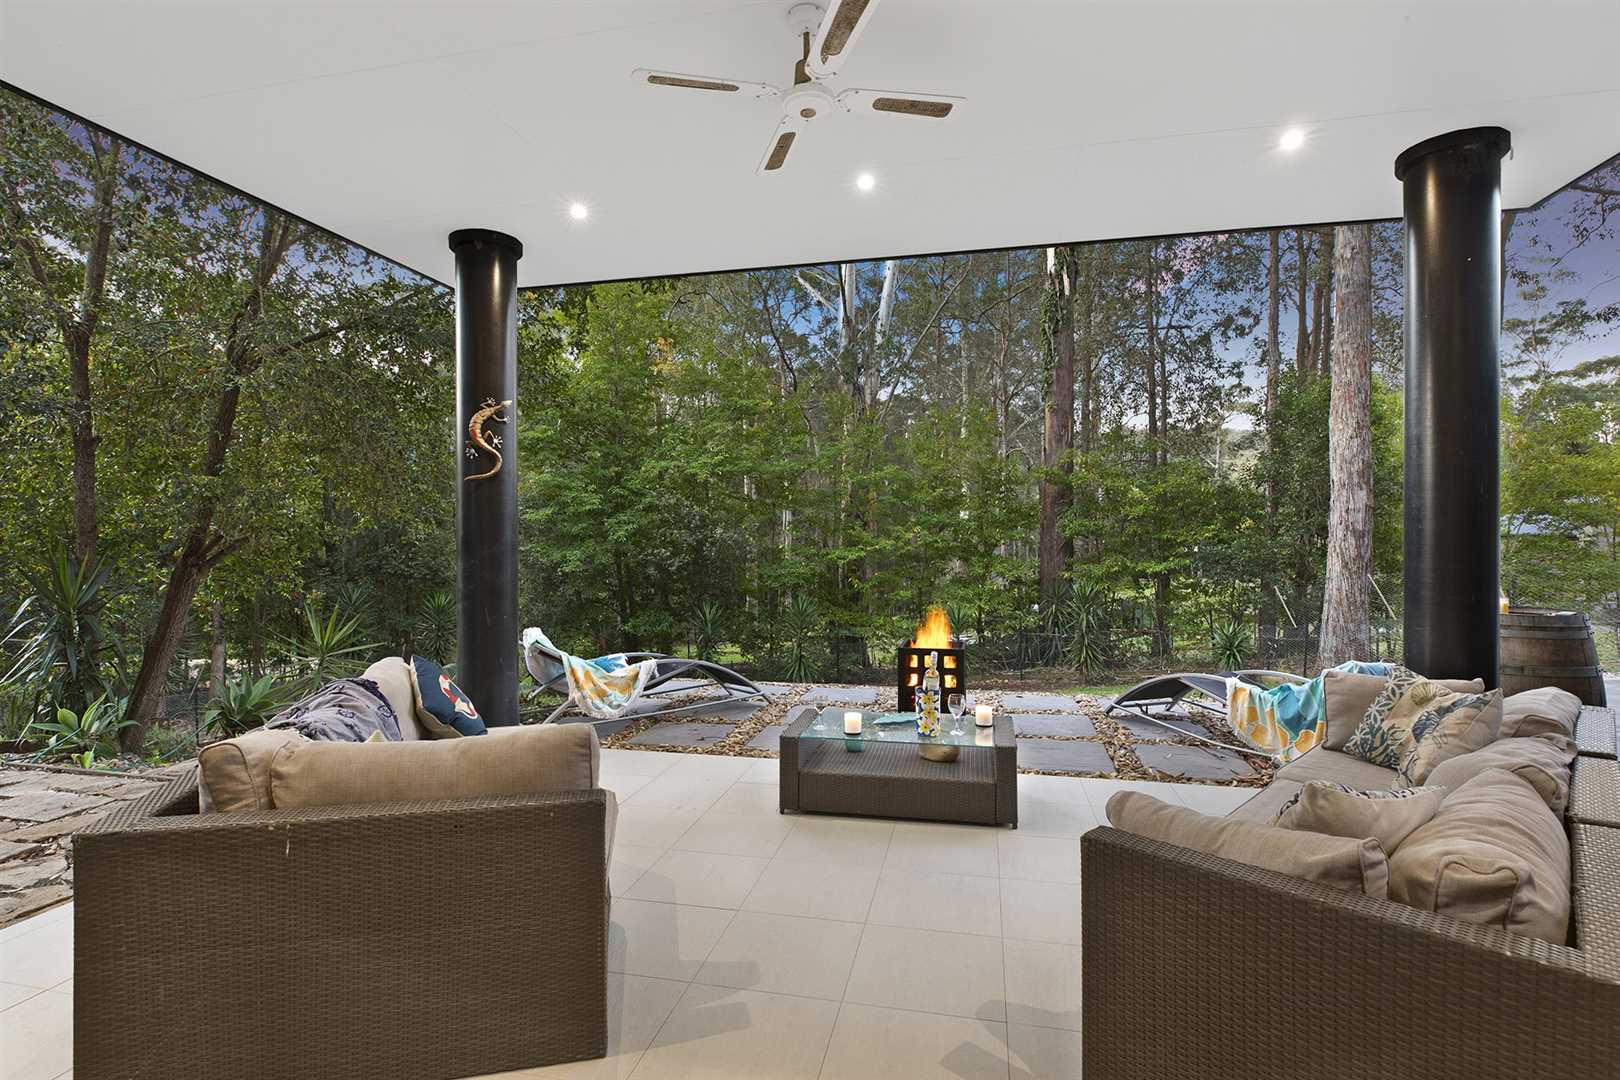 Outdoor Living & Entertaining